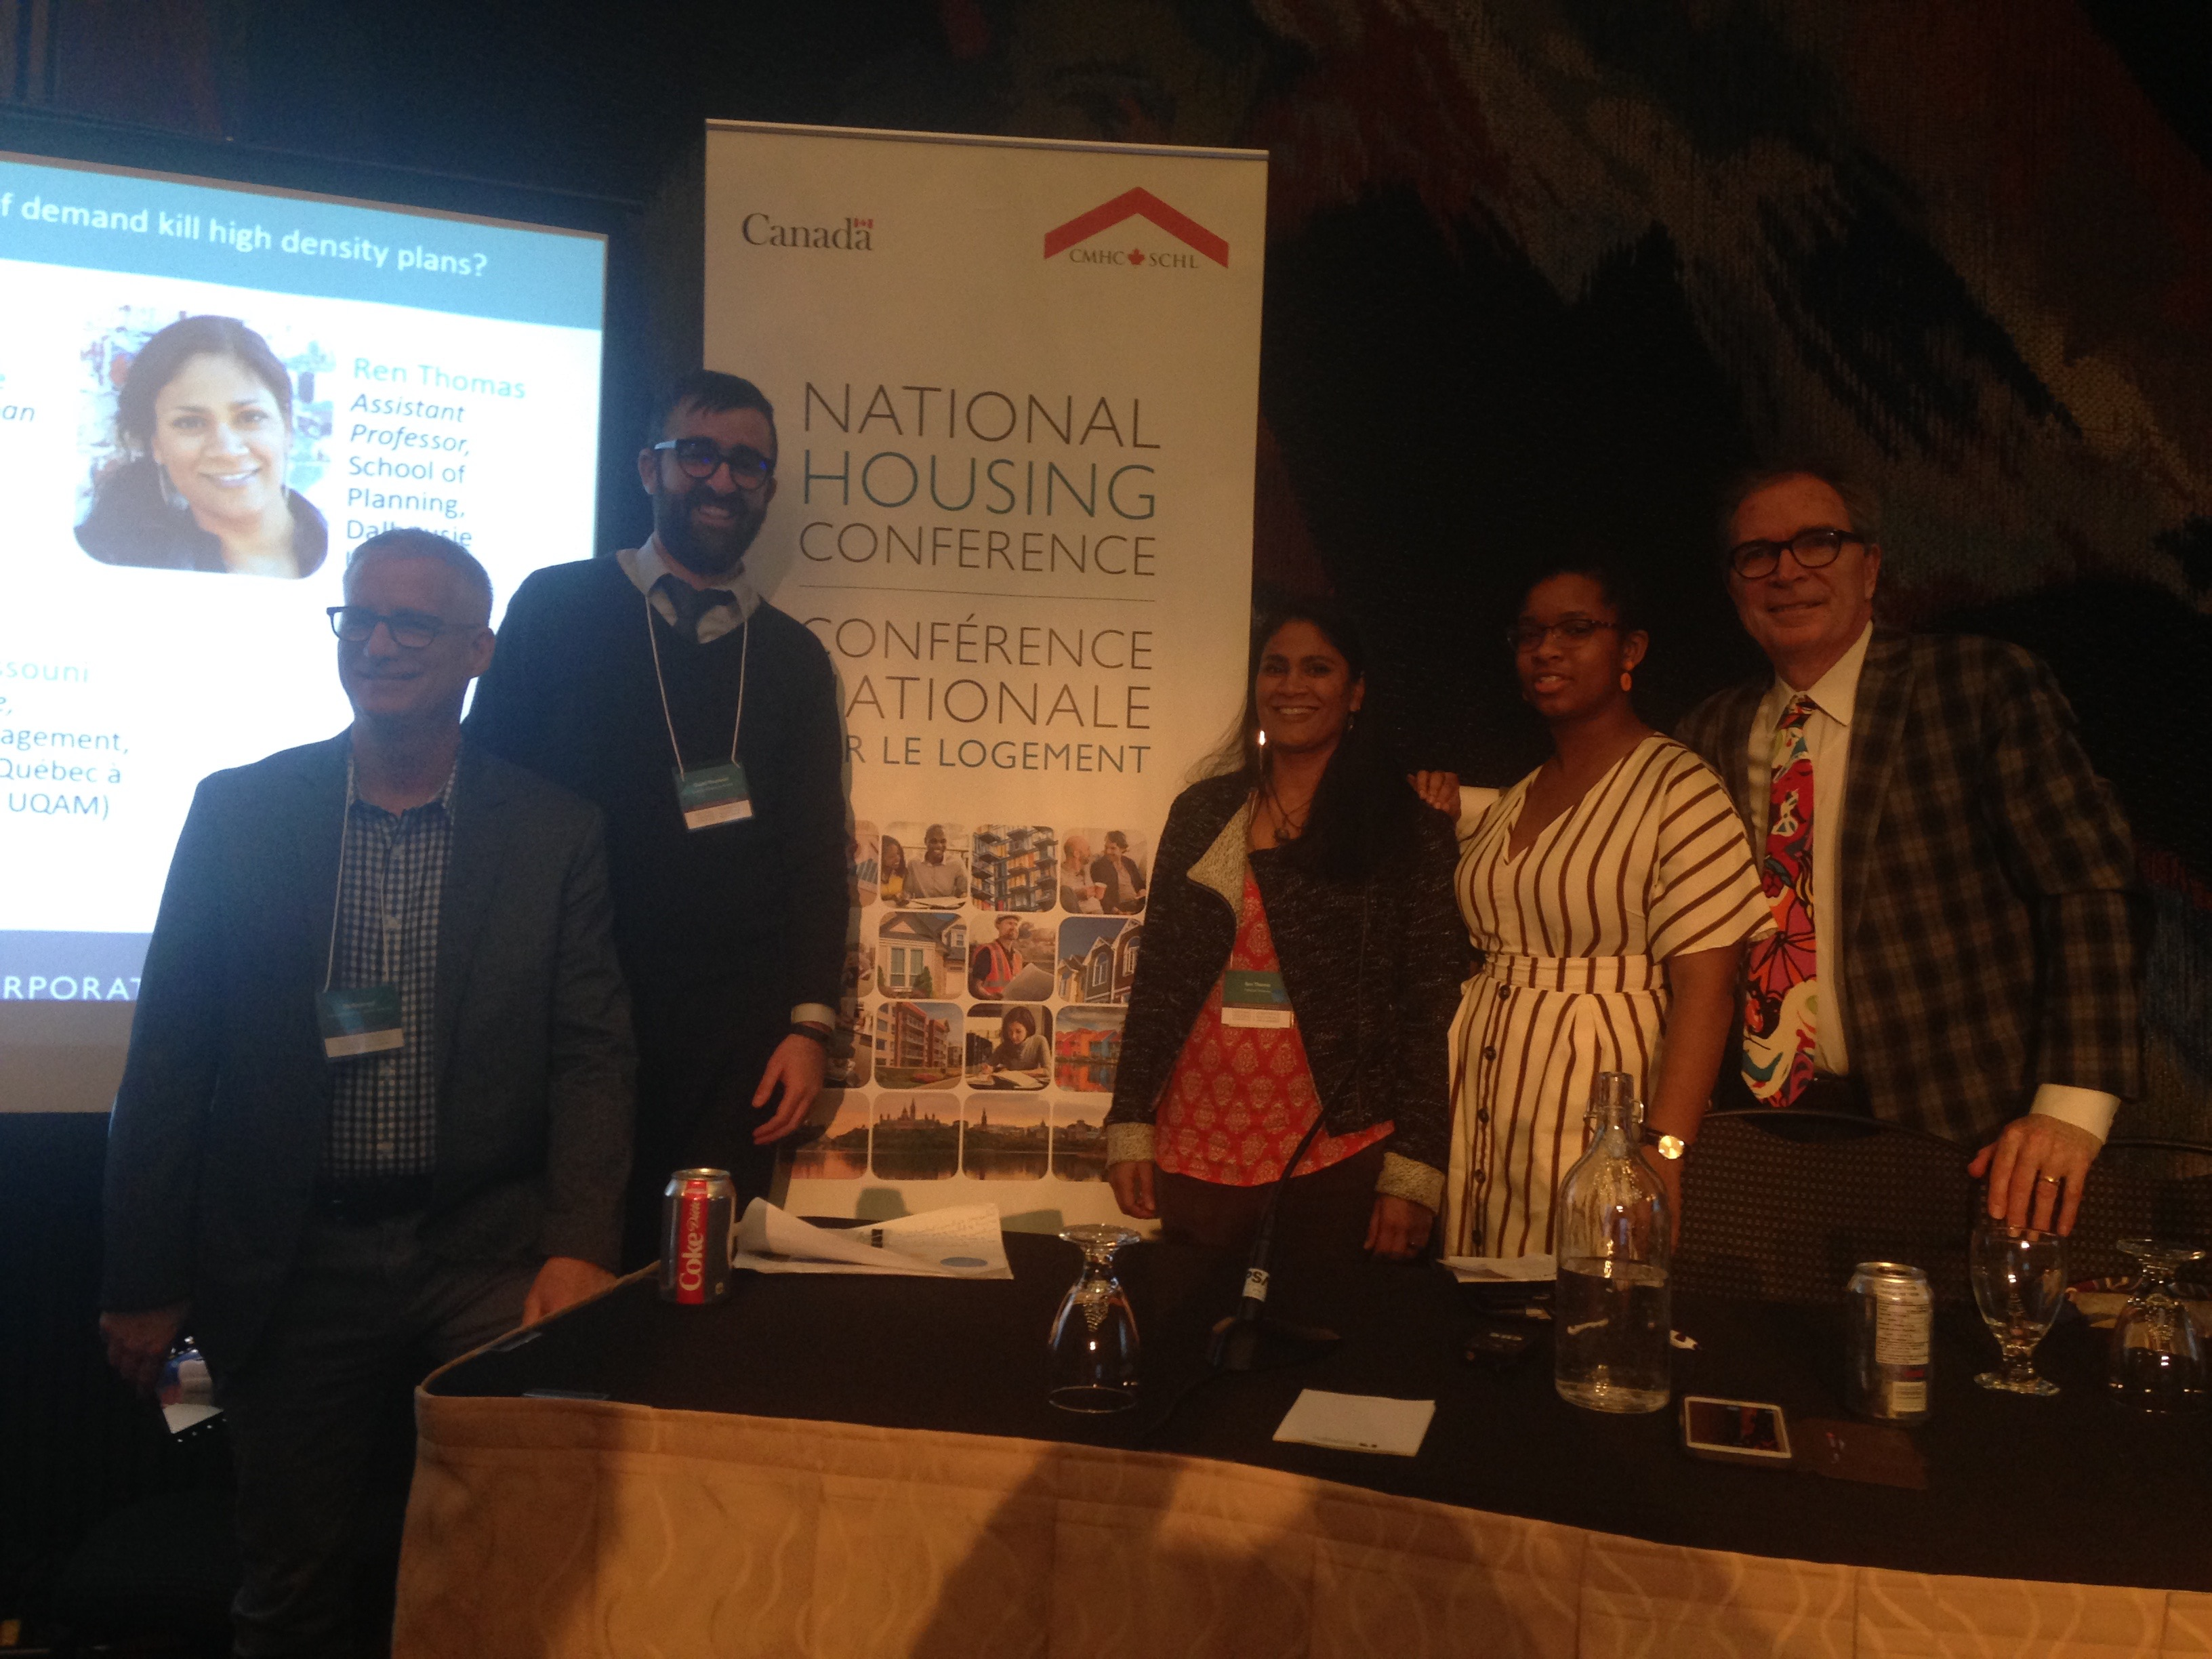 CMHC's first ever National Housing Conference